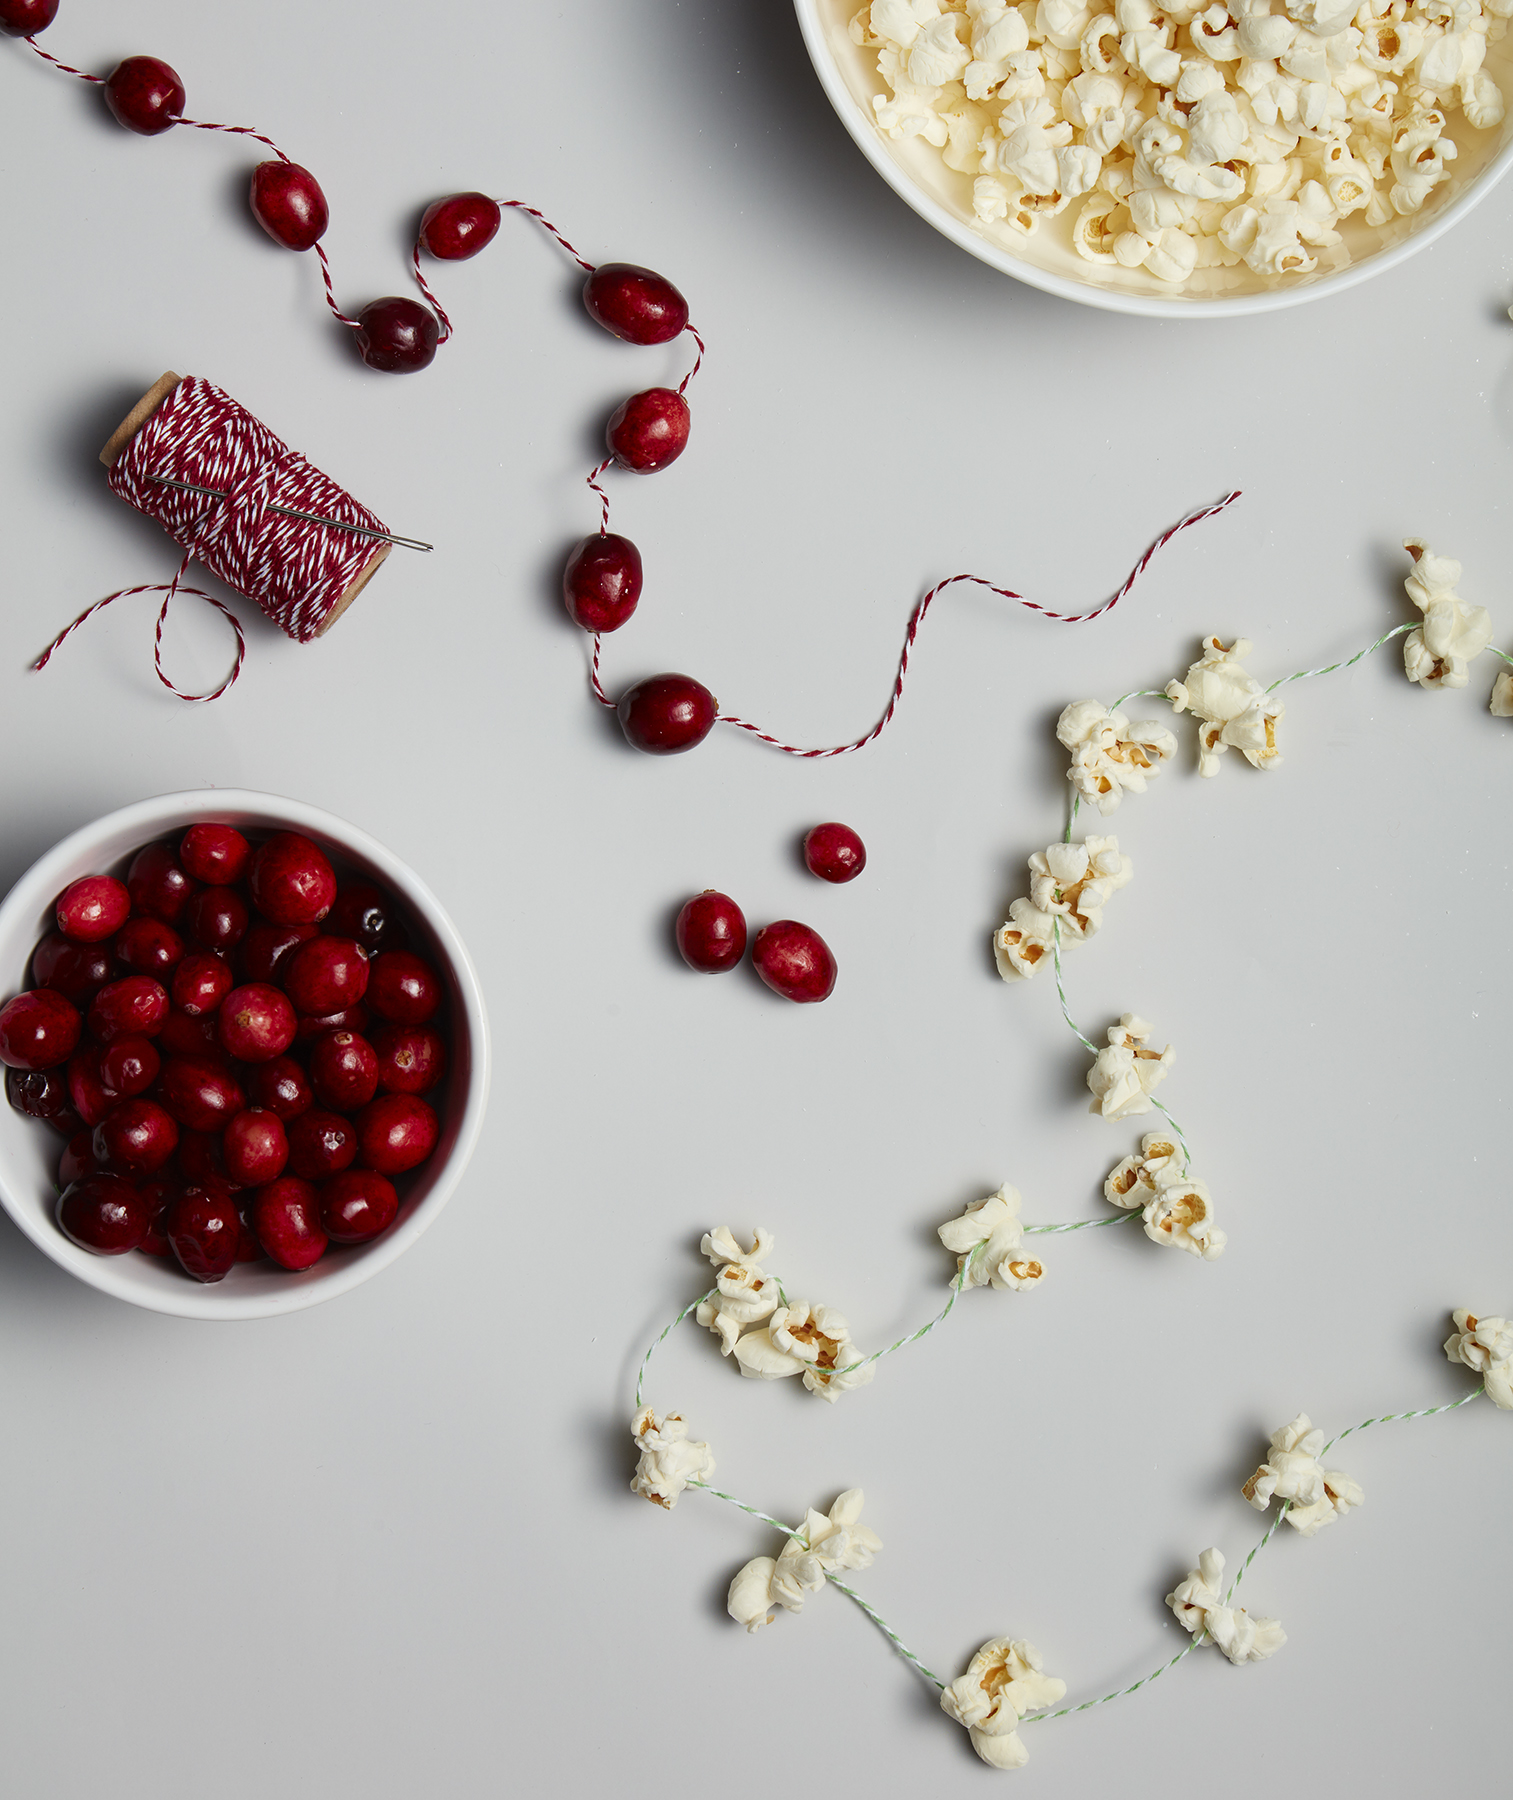 Christmas crafts ideas - Cranberry and Popcorn Garland